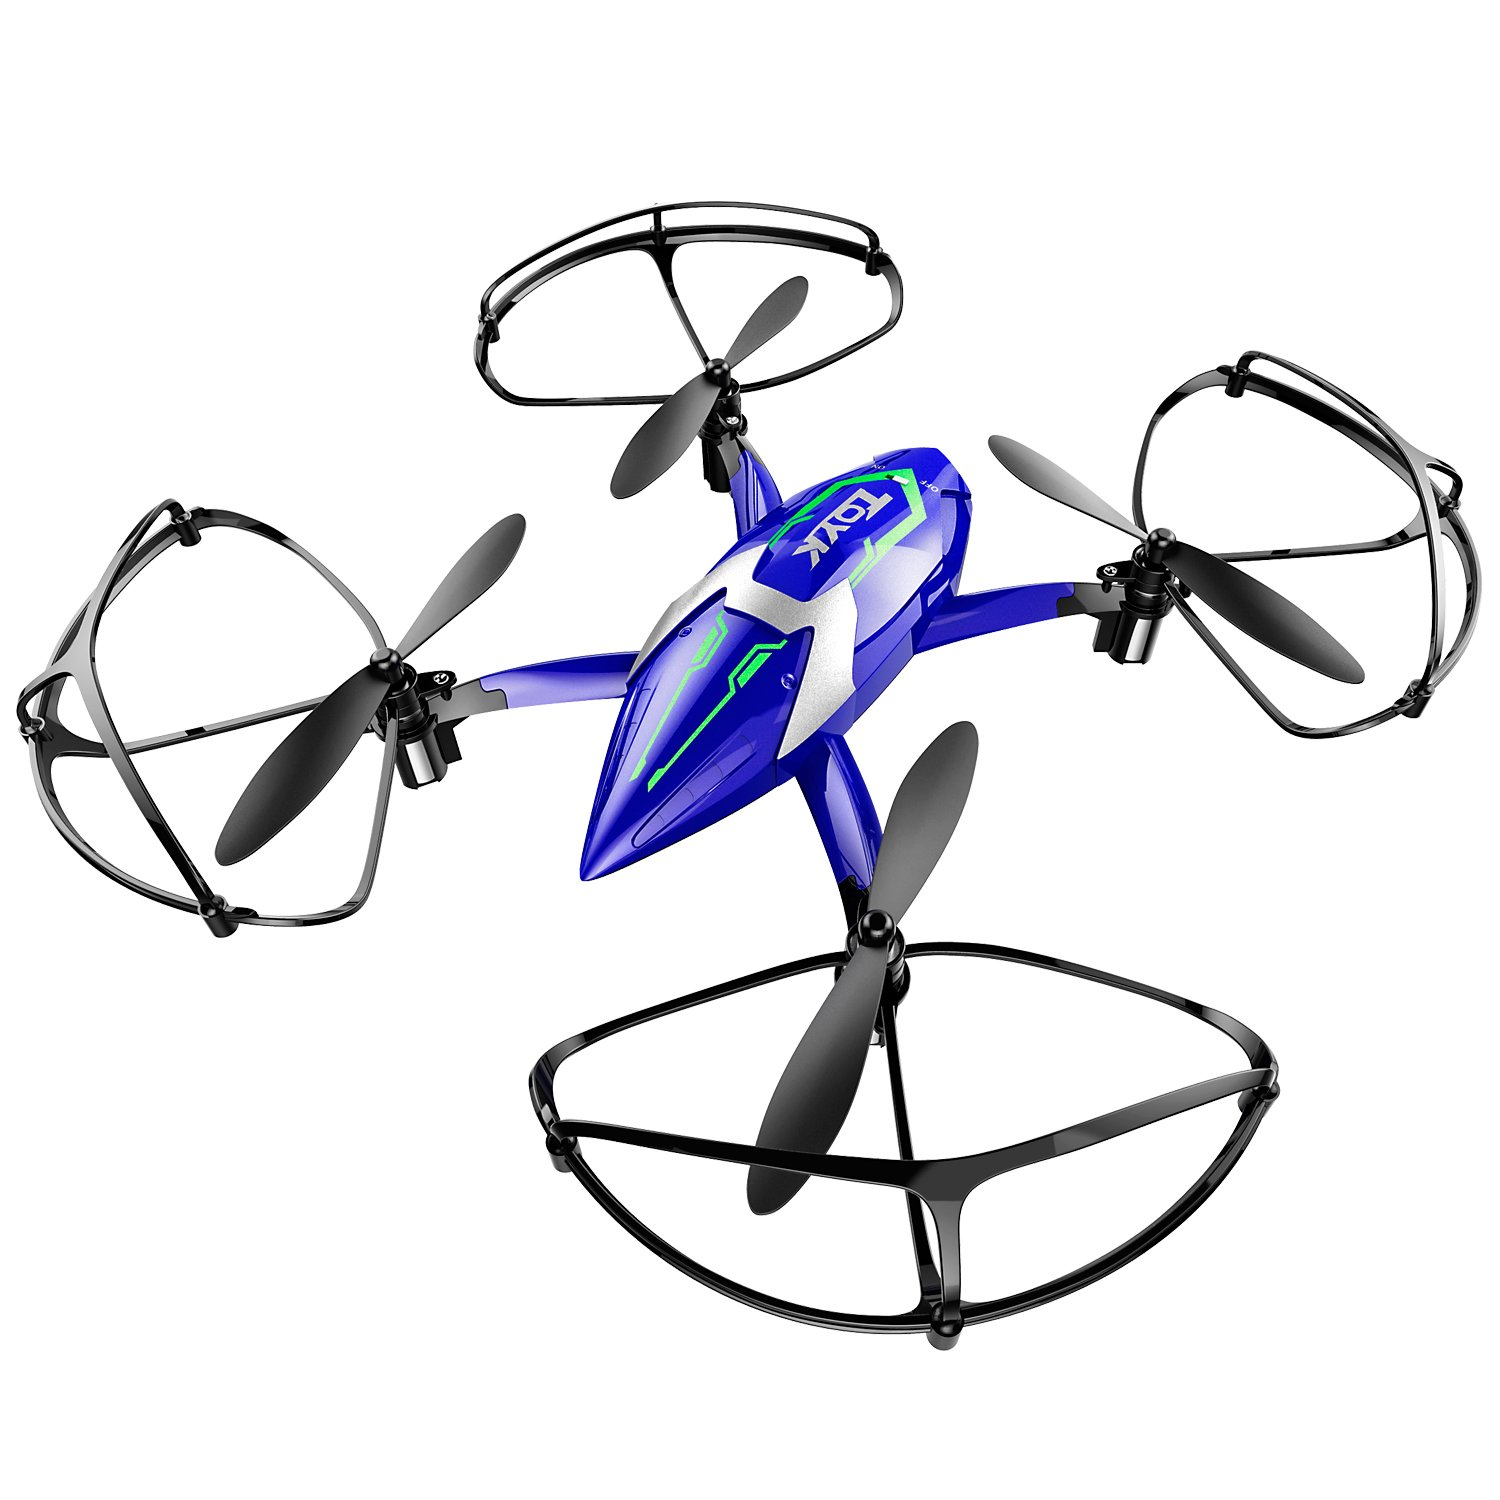 Toyk Drone 24ghz 6 Axis Gyro 4 Channel Quadcopter Hula Hoop Circuit Game A Circle Of Friends Try To Advance Hulu Mini Rc Helicopter Good Choice For Training Toys Games